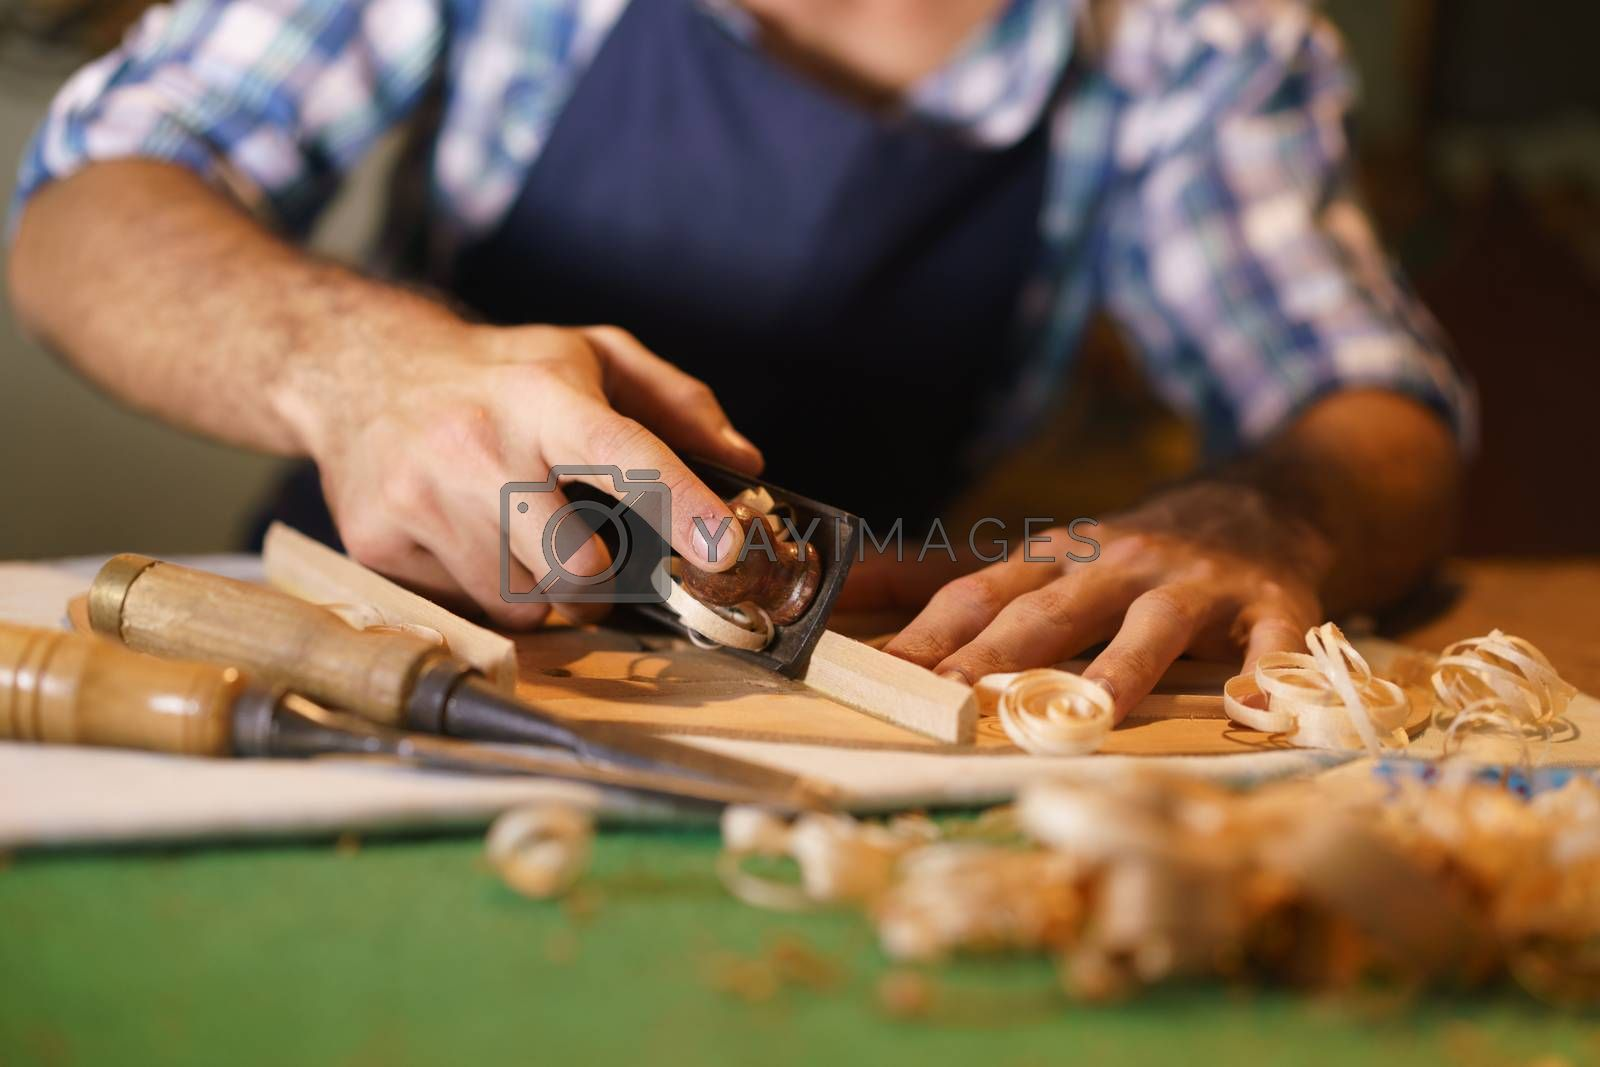 Lute maker shop and acoustic music instruments: young adult artisan cutting and chiseling wood to make a classic guitar. Closeup of his hand using a tool on guitar body